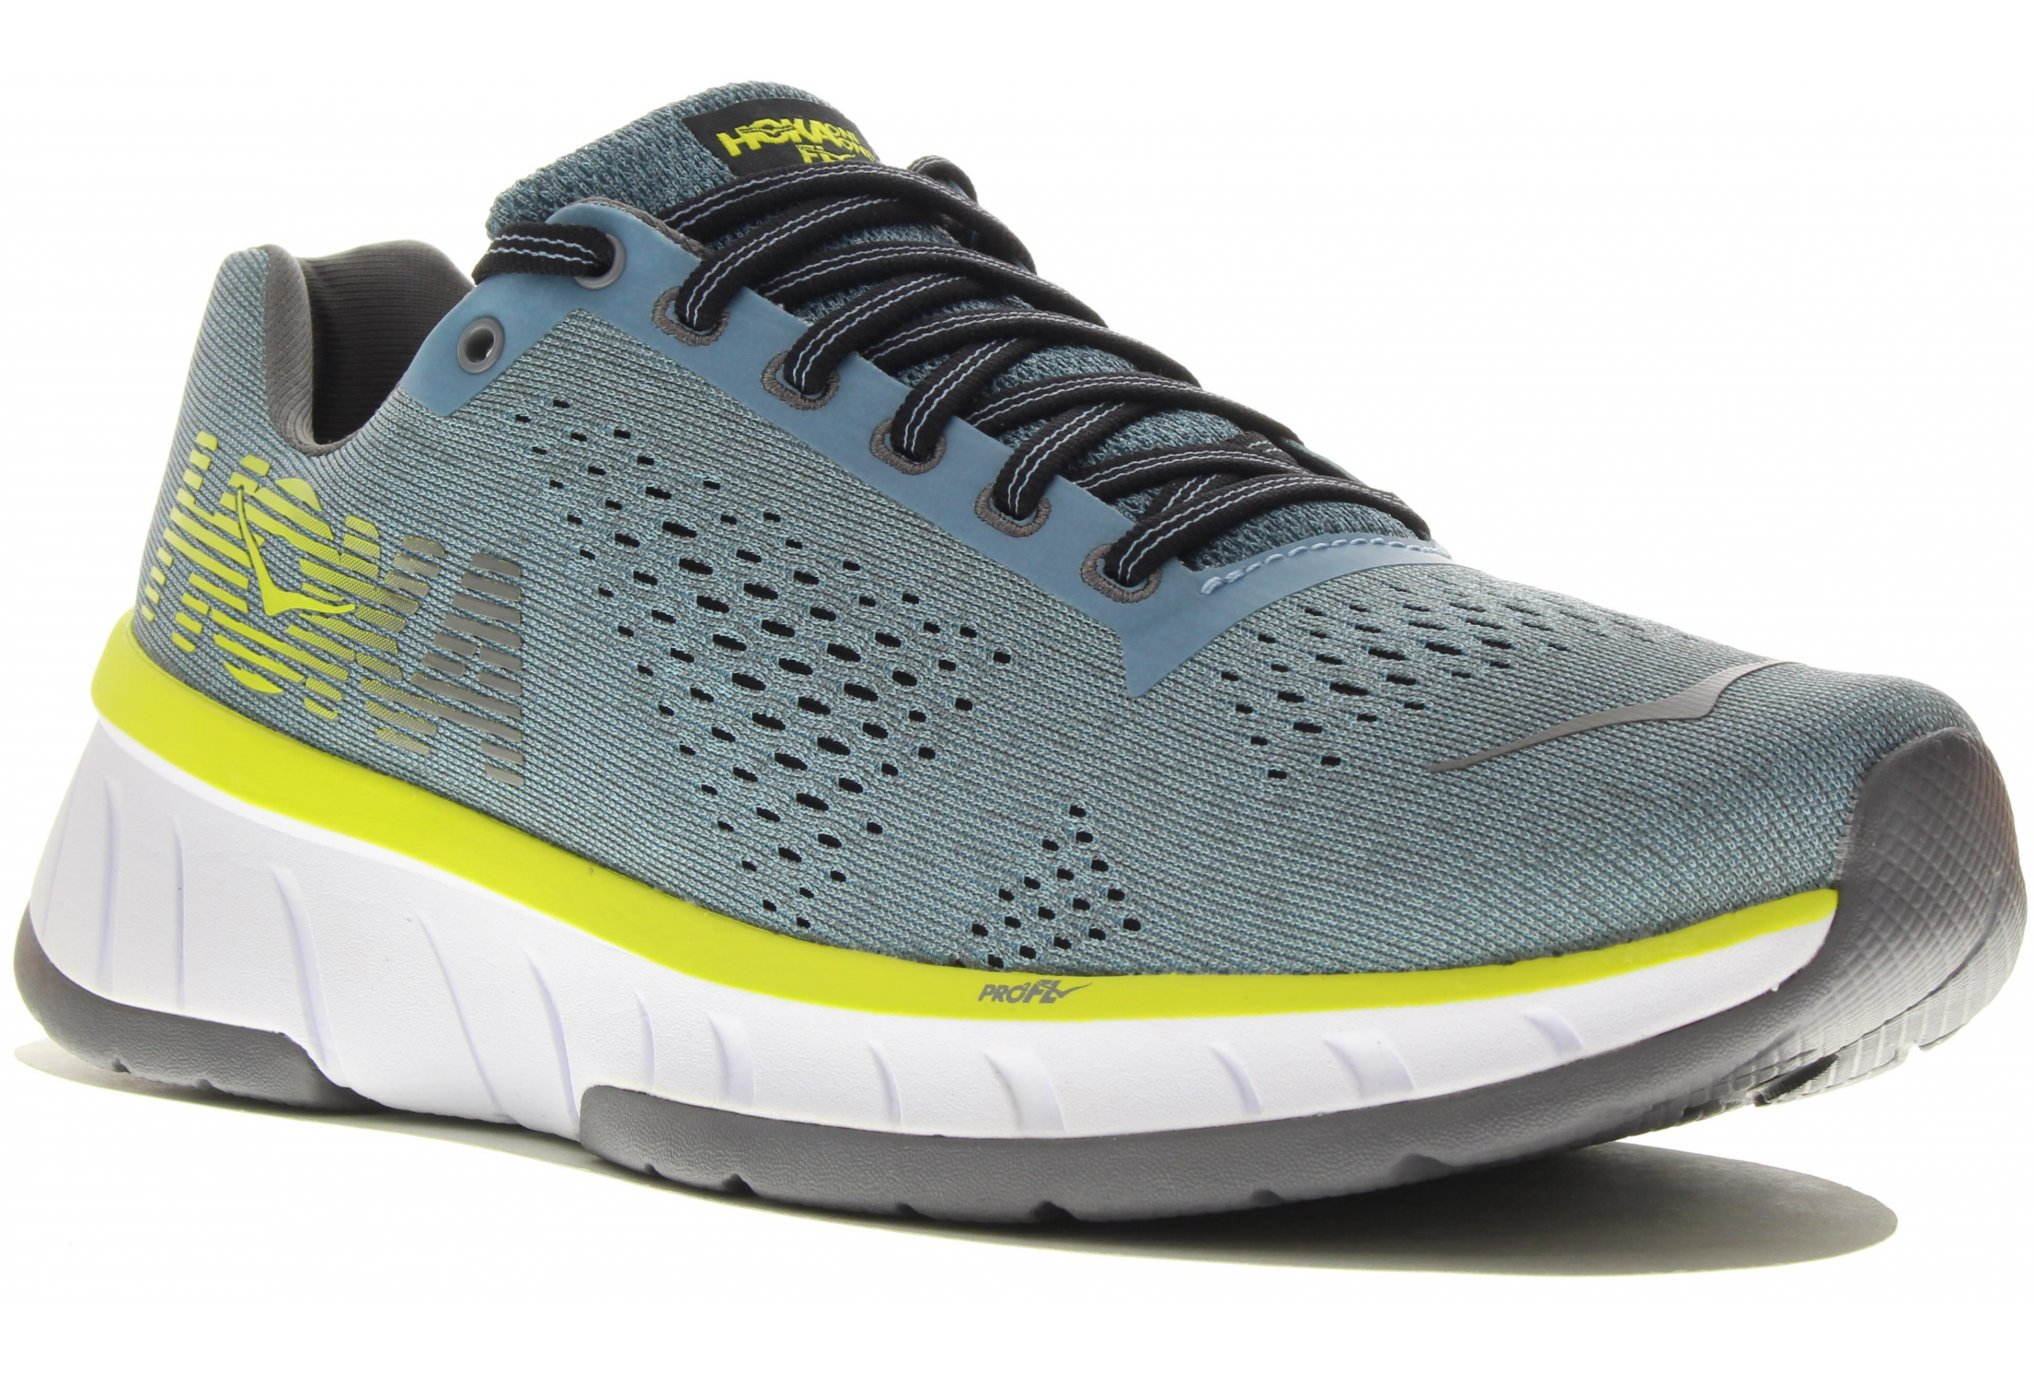 Hoka One One Cavu déstockage running